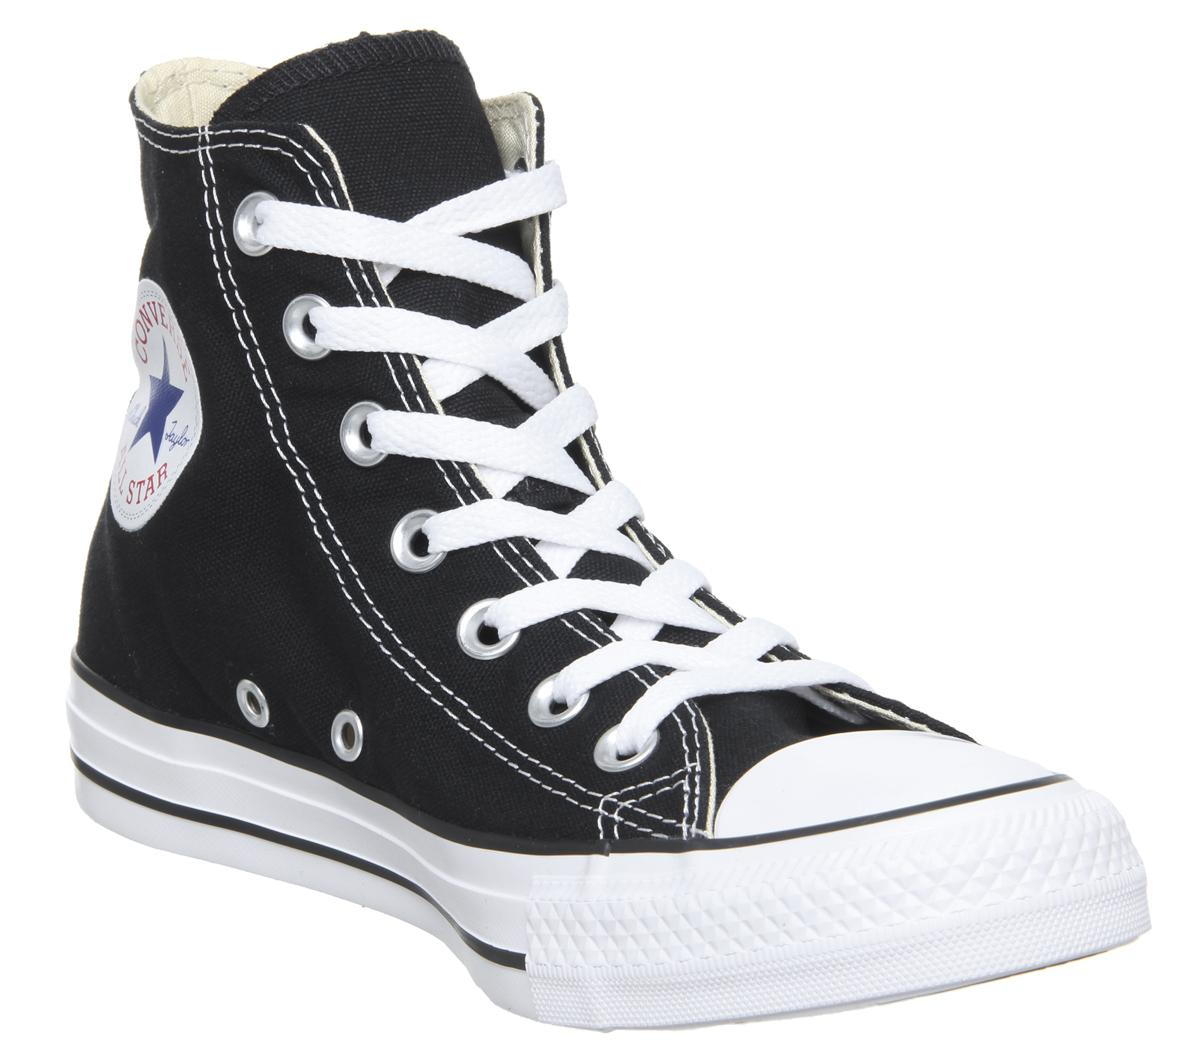 671ec8631c47 Converse All Star Hi Trainers Black Canvas - Unisex Sports